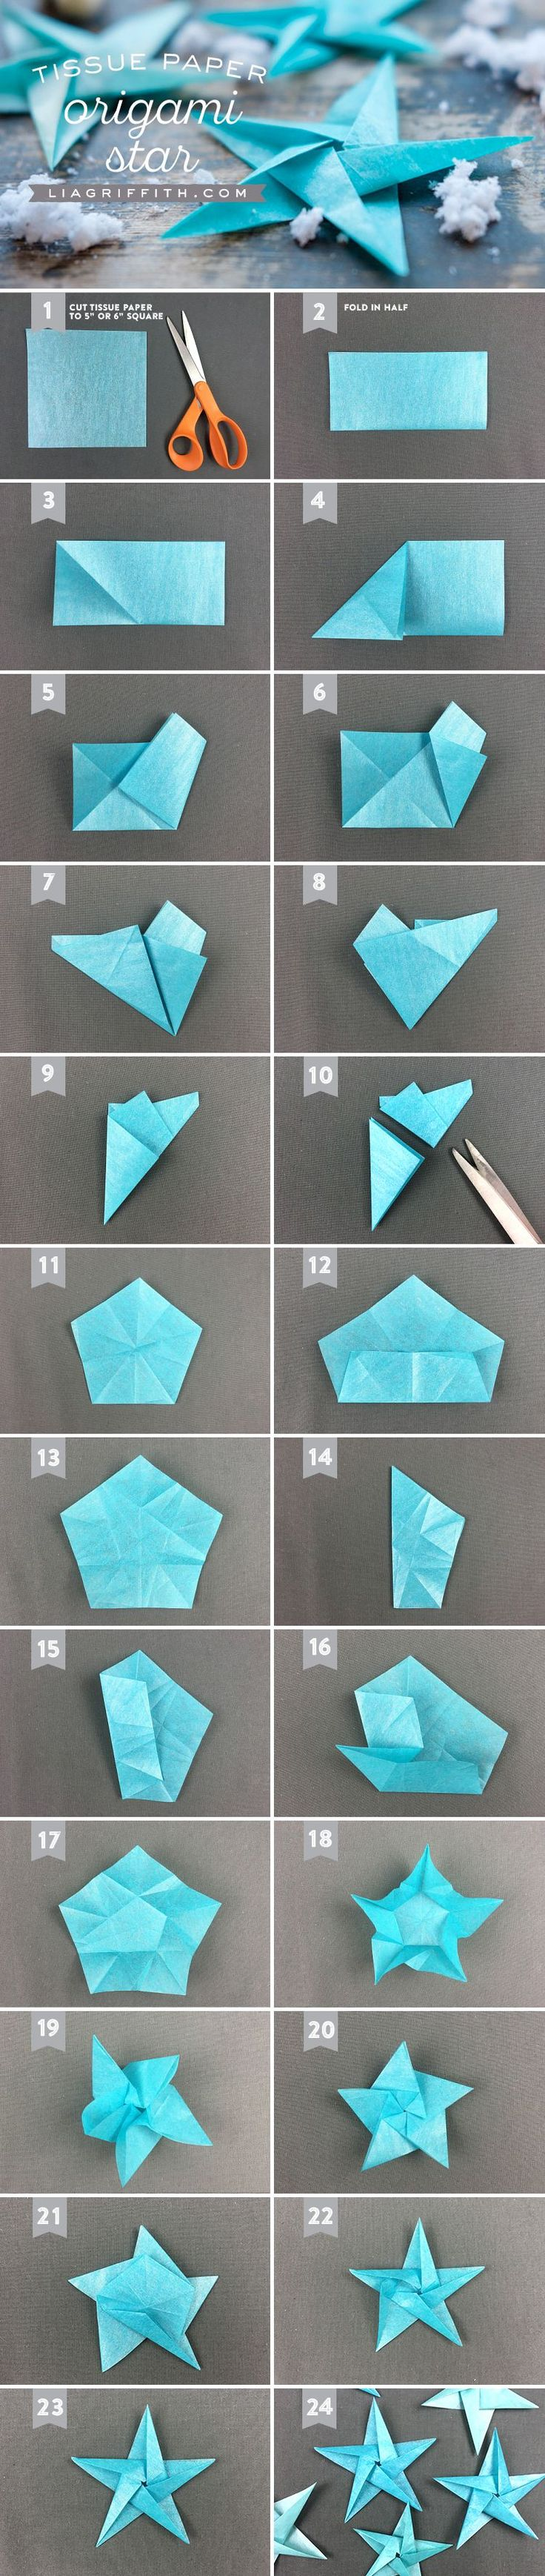 25 best ideas about origami step by step on pinterest origami paper origa - Origami paper tutorial ...